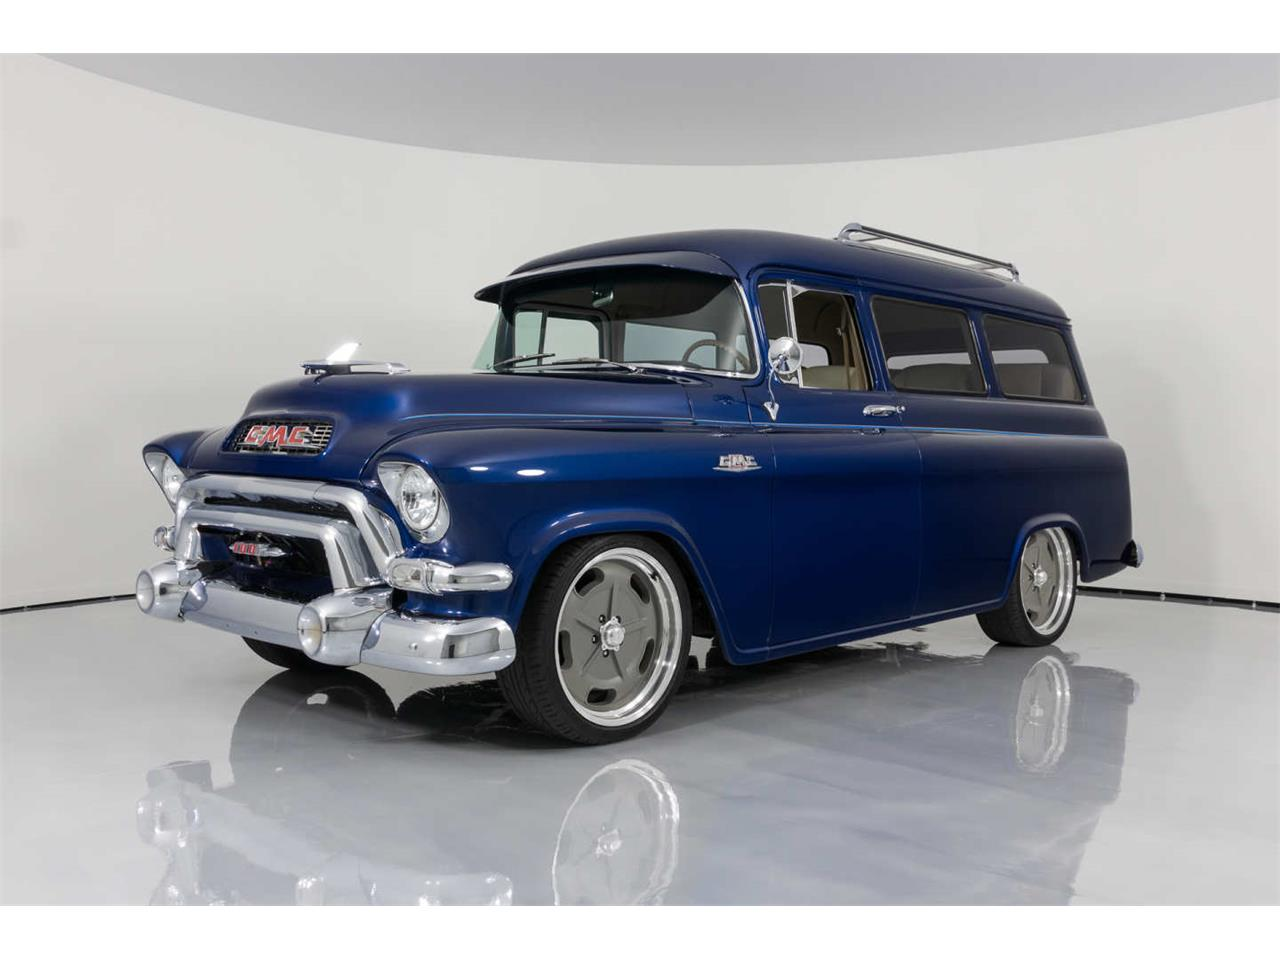 1955 GMC Suburban (CC-1253760) for sale in Biloxi, Mississippi